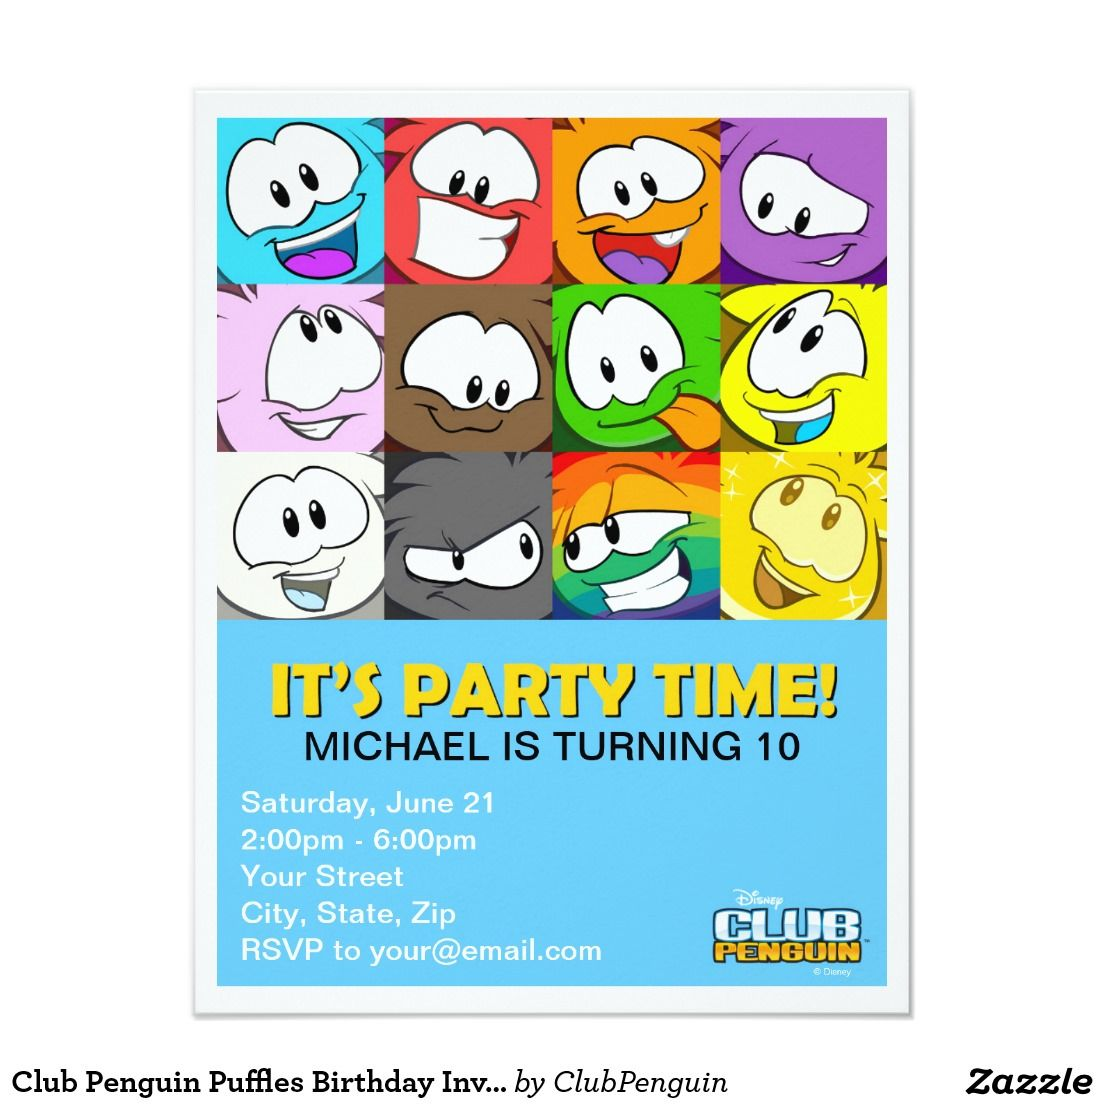 Club Penguin Puffles Birthday Invitation Customize This Club